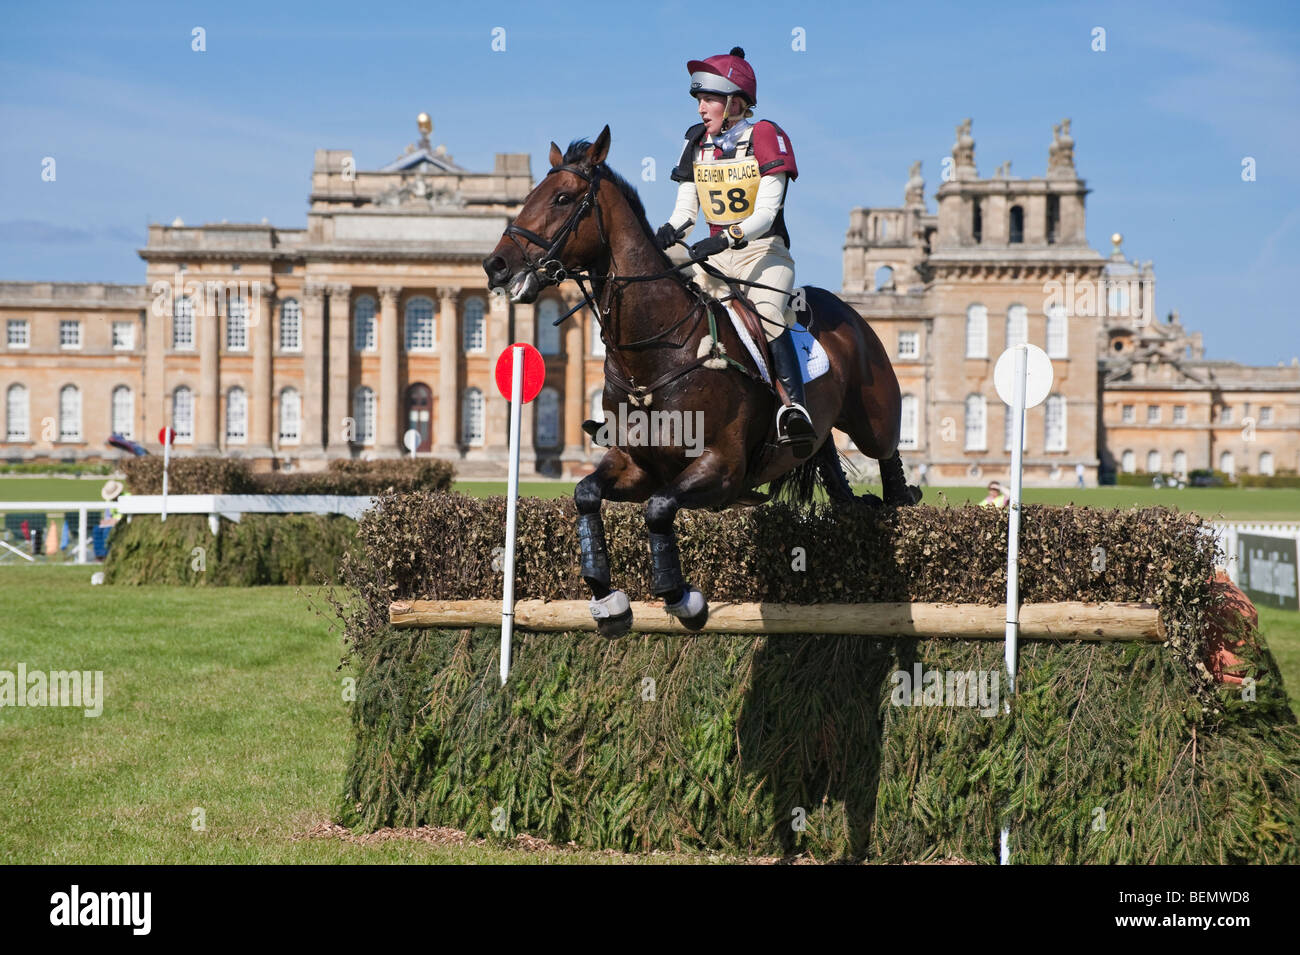 A competitor jumps a fence during the 2009 Blenheim horse trials, Blenheim Palace, Woodstock, Oxfordshire, England, - Stock Image